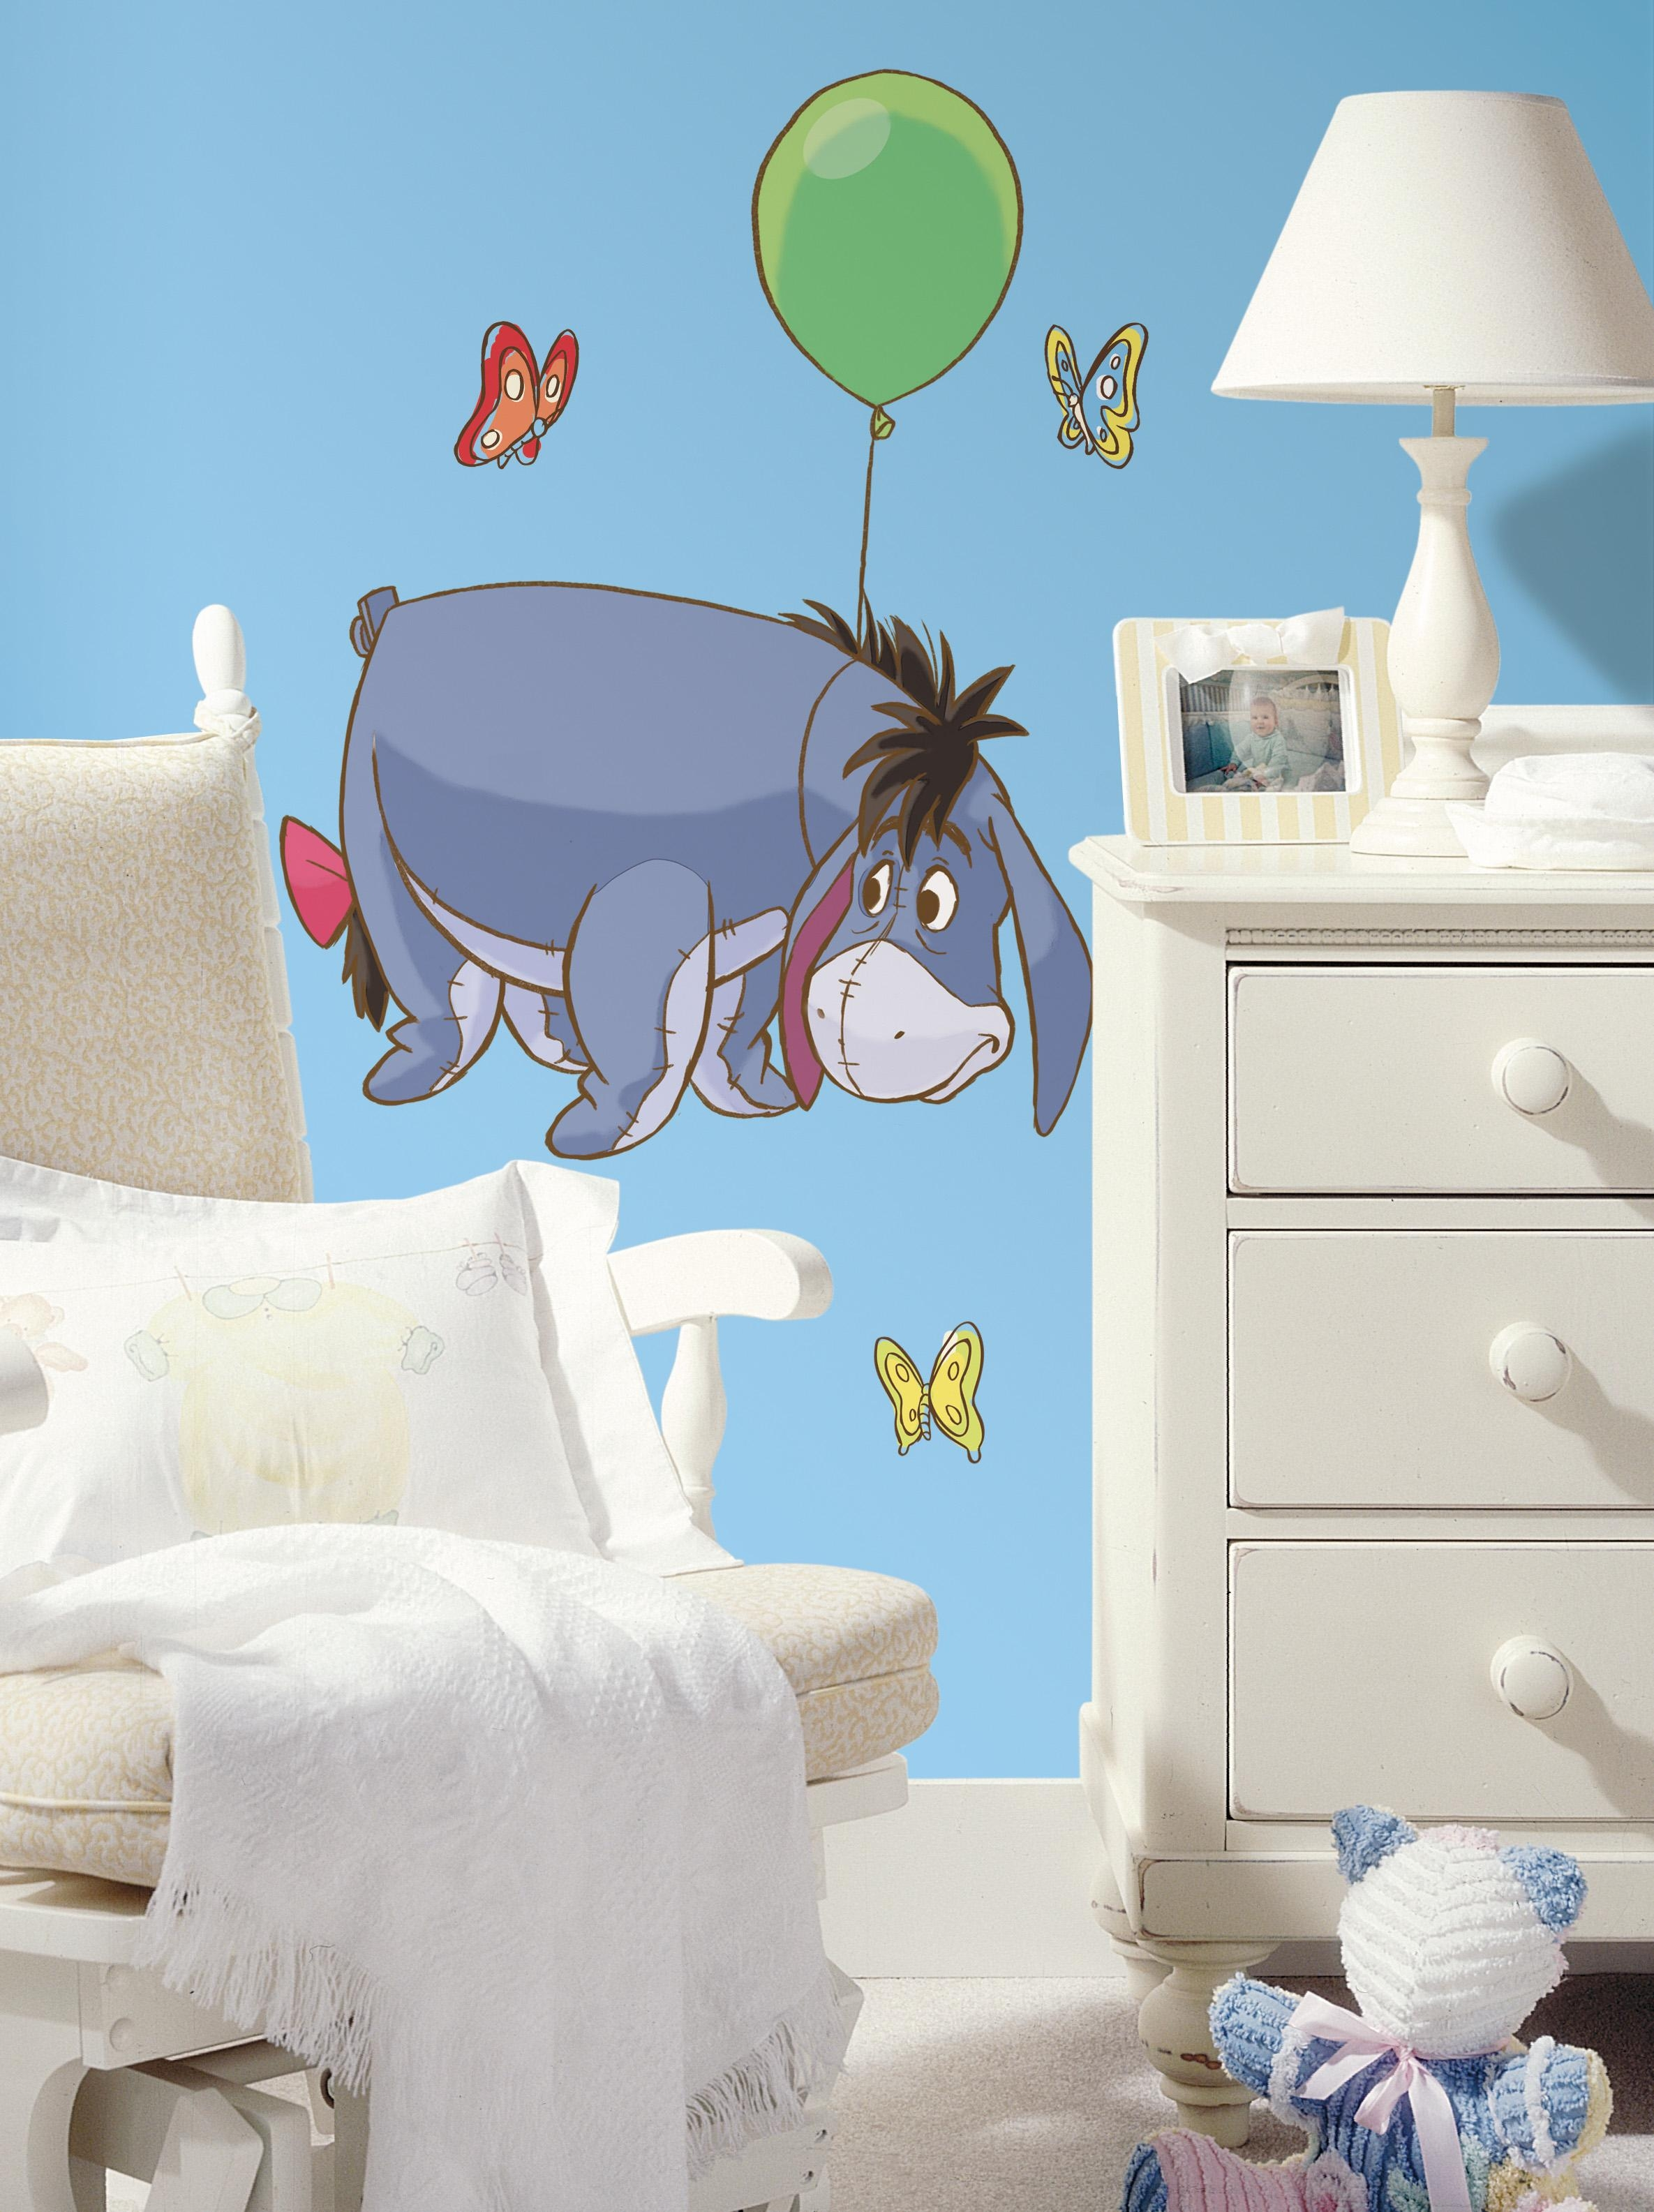 Winnie The Pooh Decor | Colorful Kids Rooms Intended For Winnie The Pooh Wall Decor (Image 16 of 20)